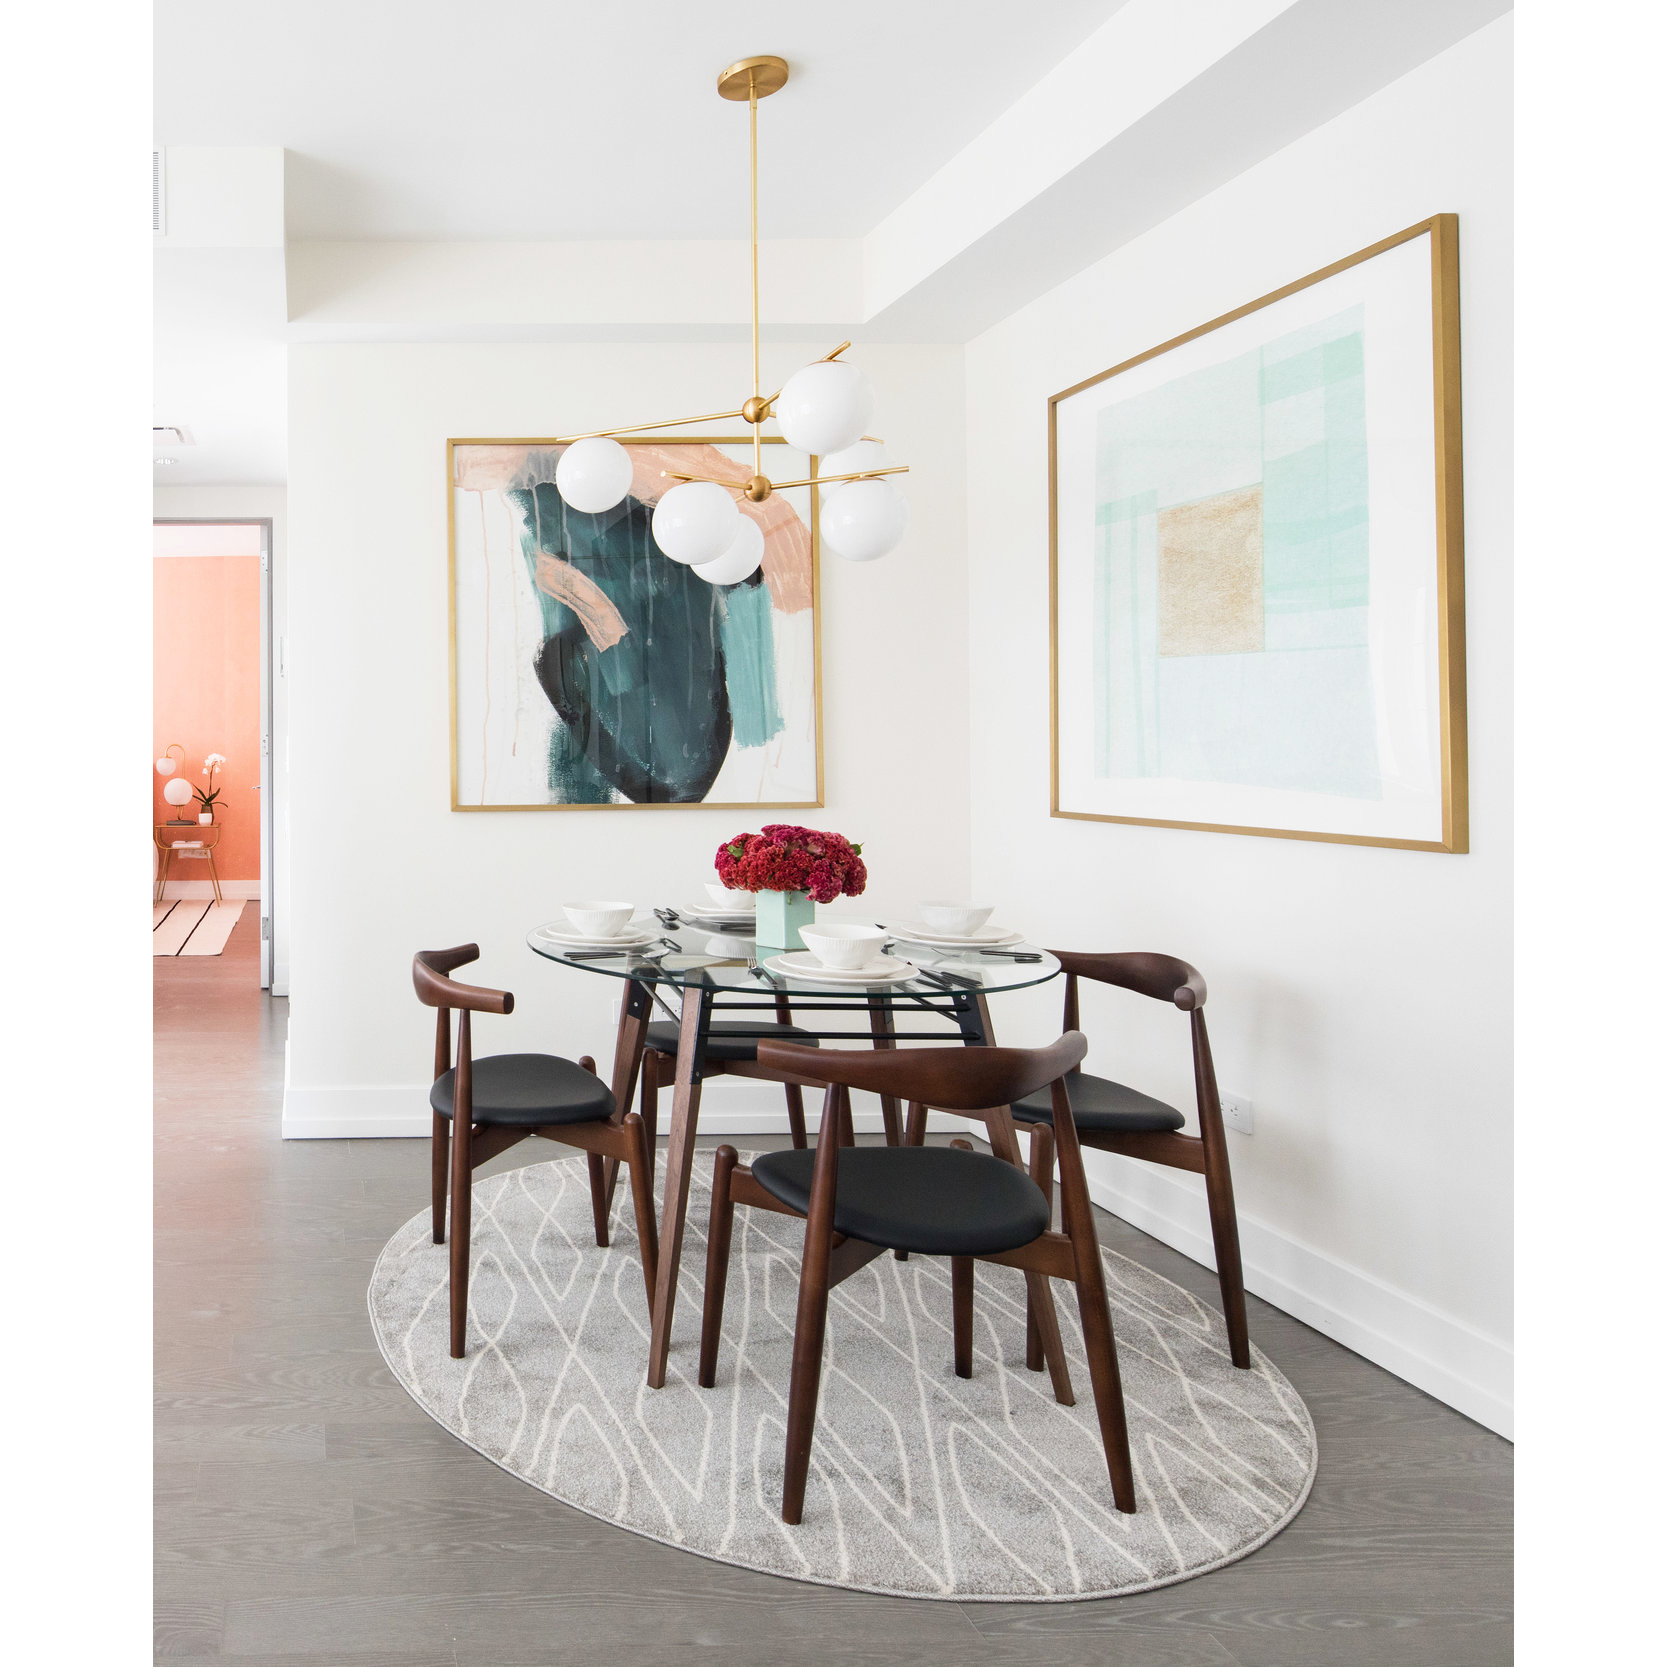 Beautiful NY apartment using our Ross Dining Table in Walnut and Black by @workof     #RossDiningTable #diningtable #residentialdecor #interiorstyles #decorcrushing #homedecor #homedesign #homesweethome #interiordecor #homeinspo #interiorstyling #instahome #homeinteriors #simplystyleyourspace #midcenturystyle  #furnituredesign #decor #elledecor #midcenturymodern #modernliving #midcenturyhome #furnituredesign #residentialdesign